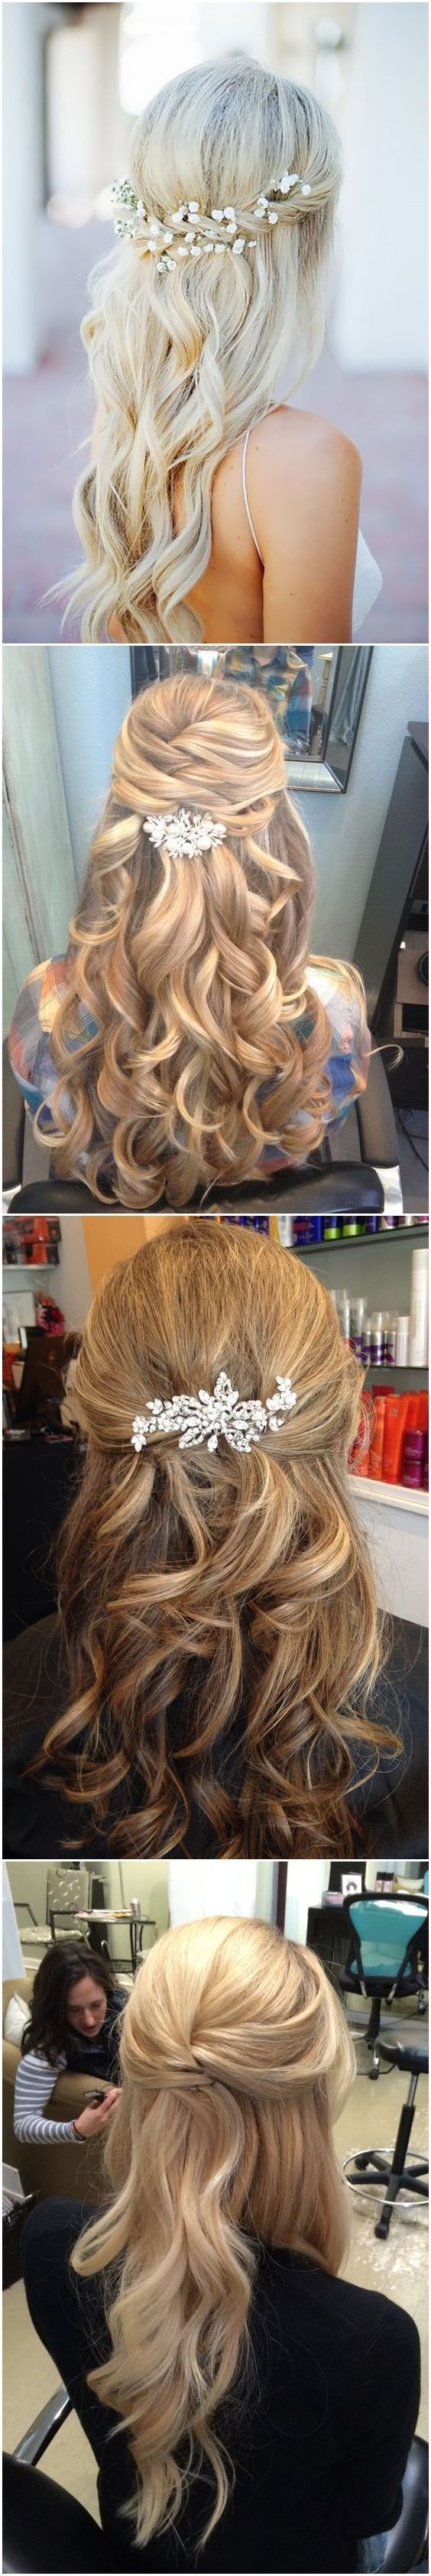 popular wedding hairstyles for brides bridesmaids and guests